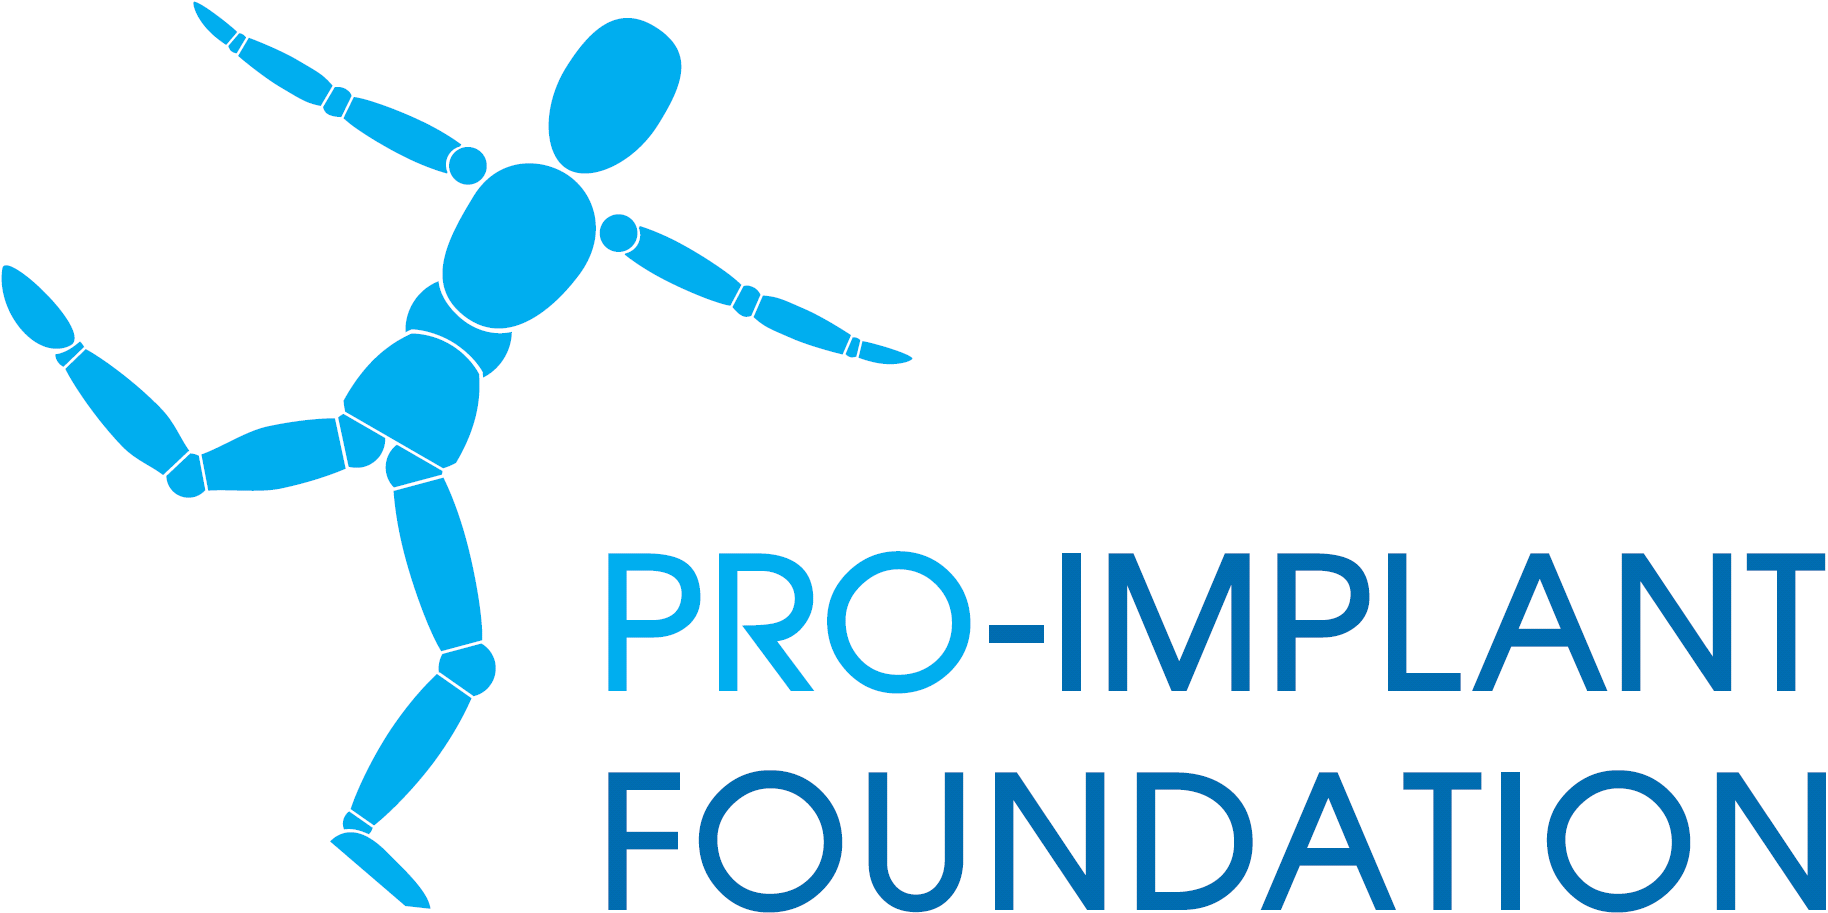 Pro-implant_foundation_logo.PNG